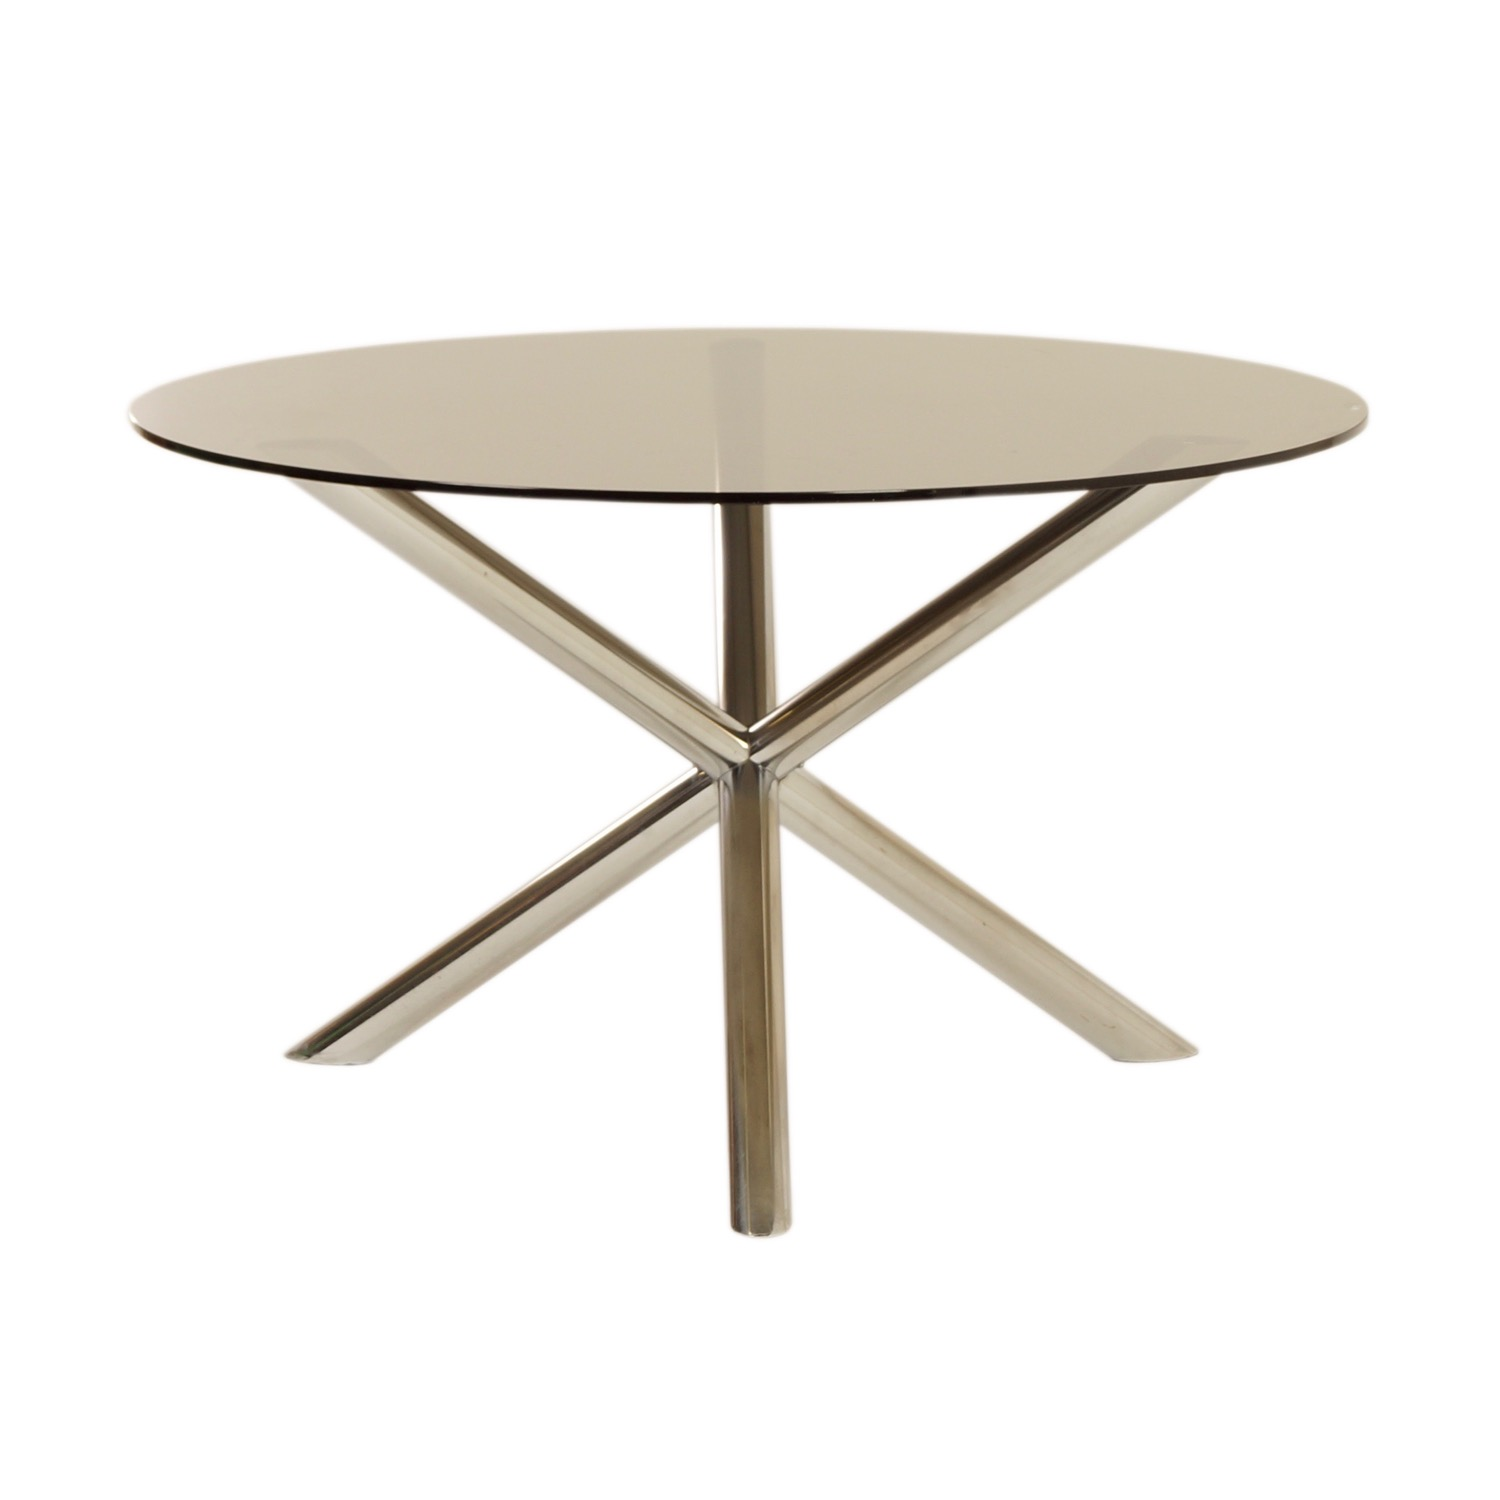 Tripod Dining Table By Roche Bobois 1960s Mid Century Design